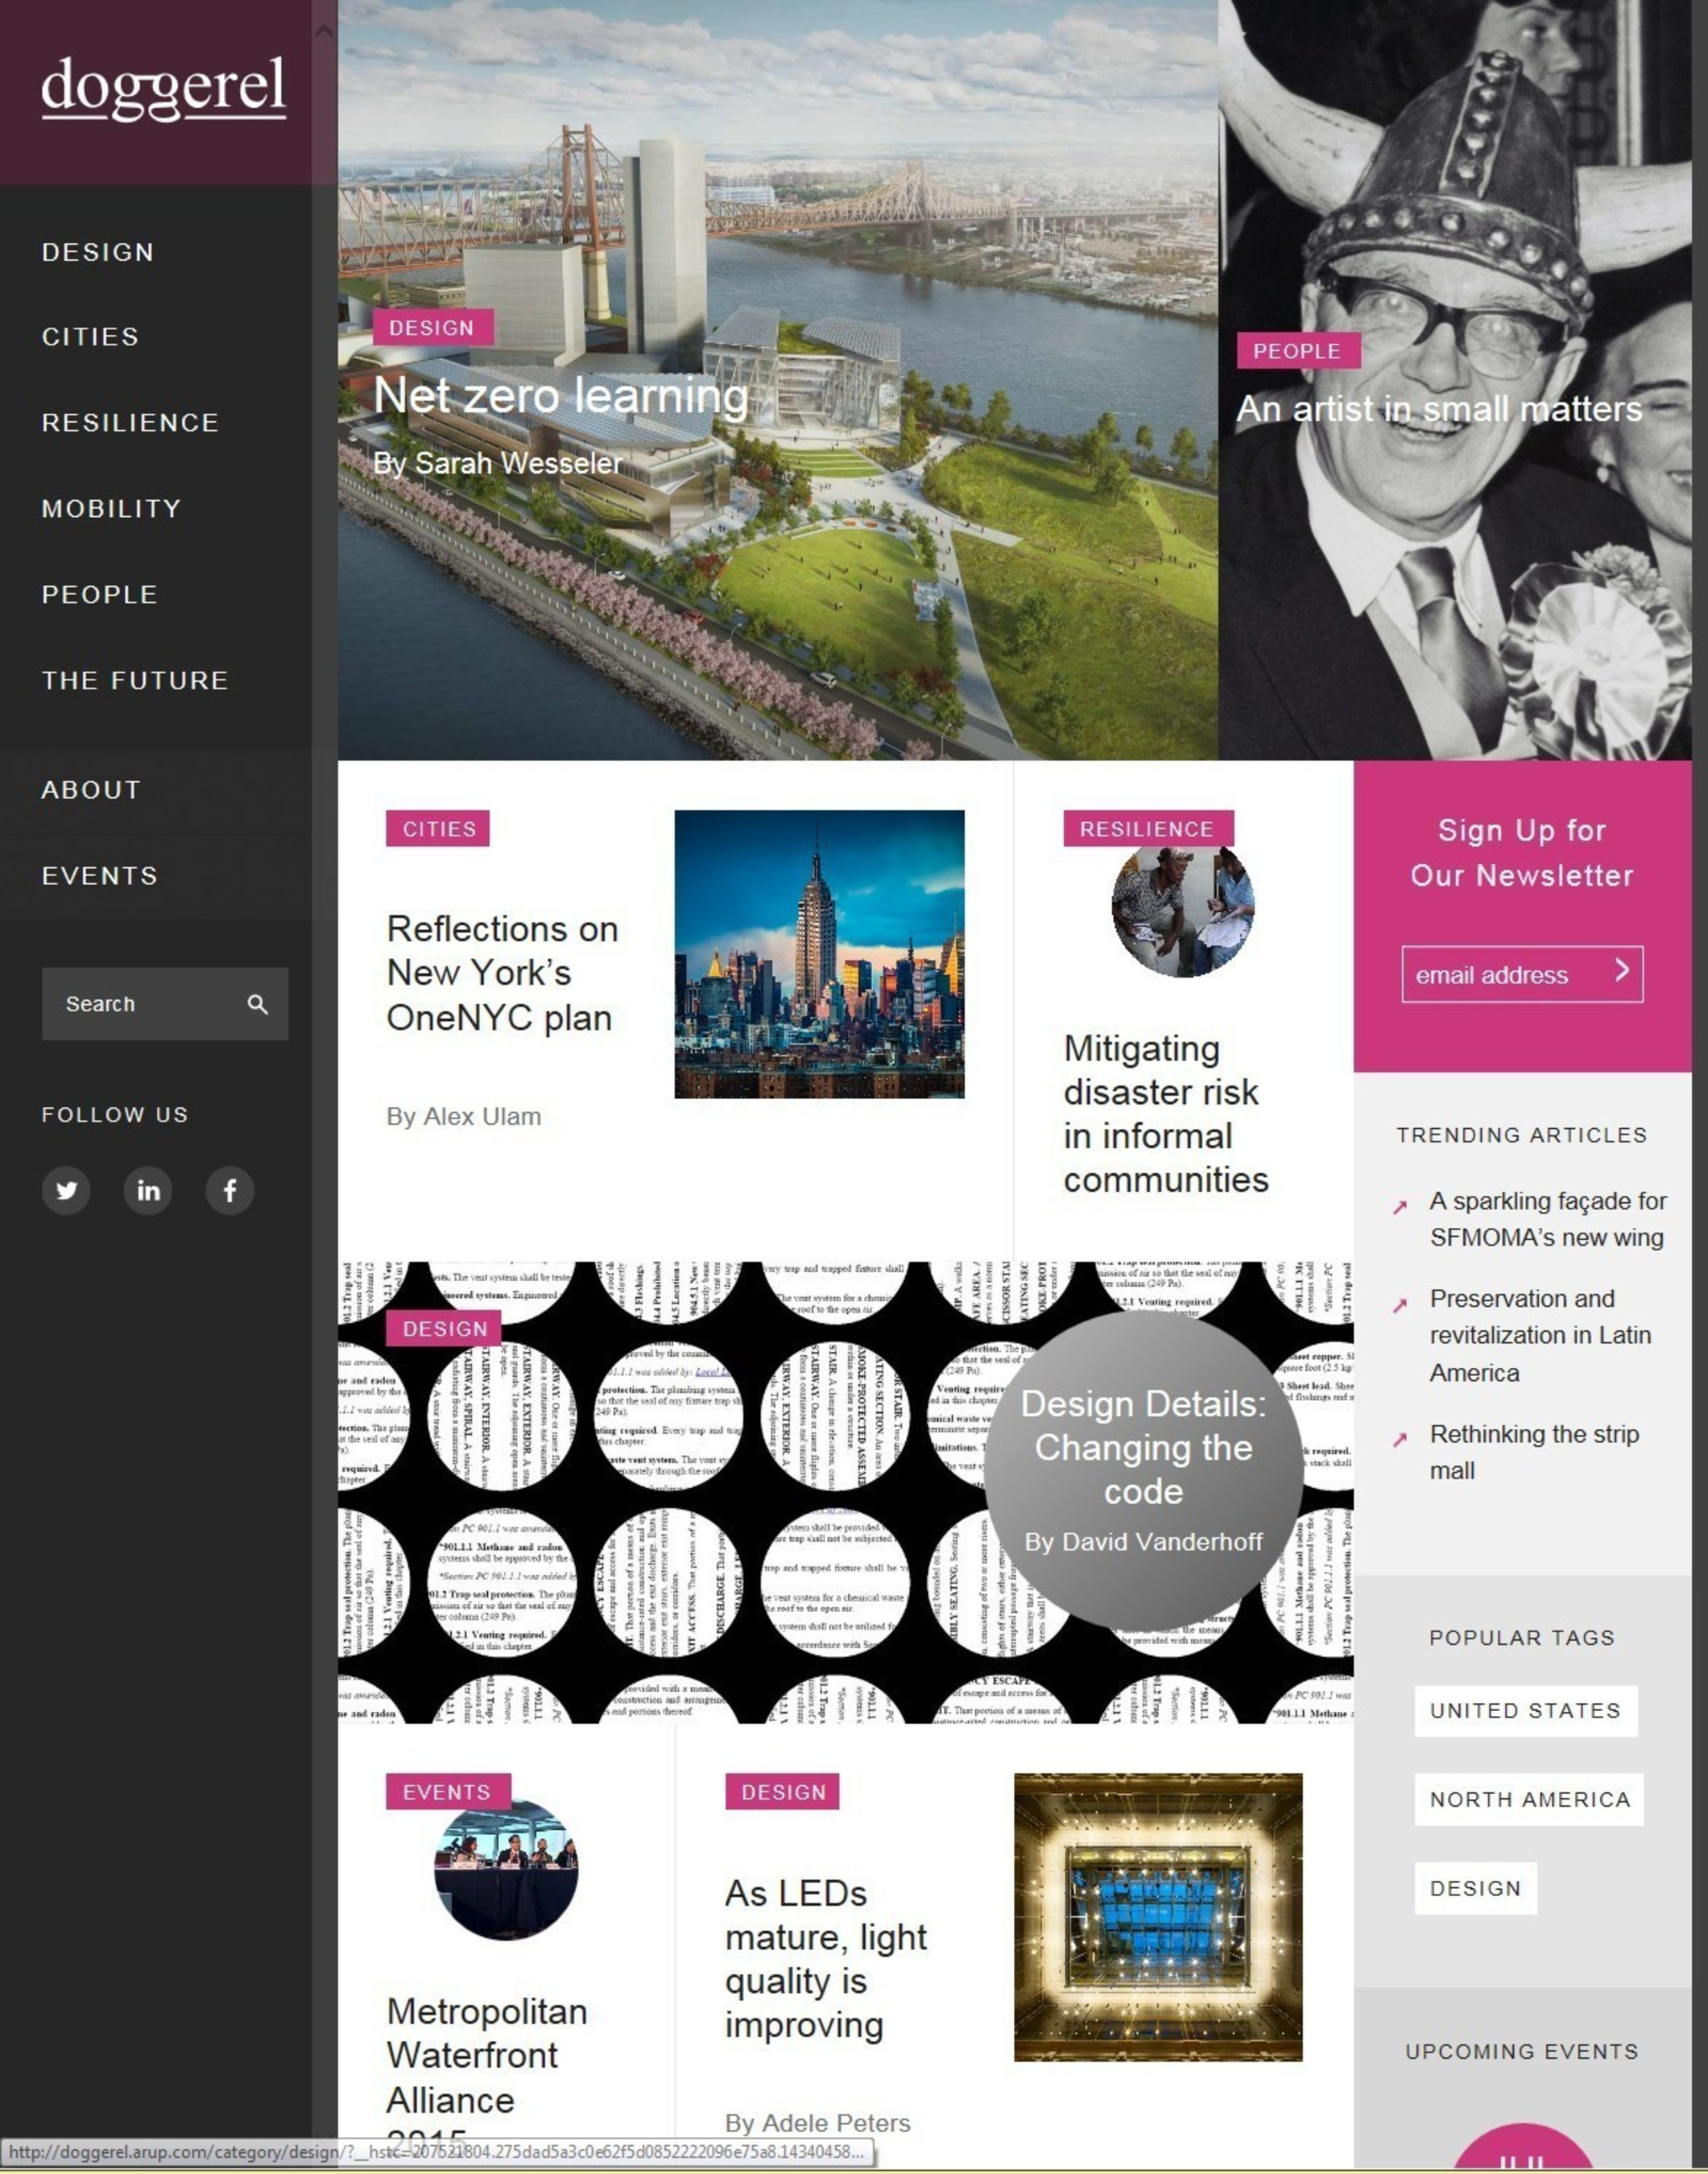 Arup Launches Doggerel, an Online Magazine to Showcase Innovation in the Built Environment